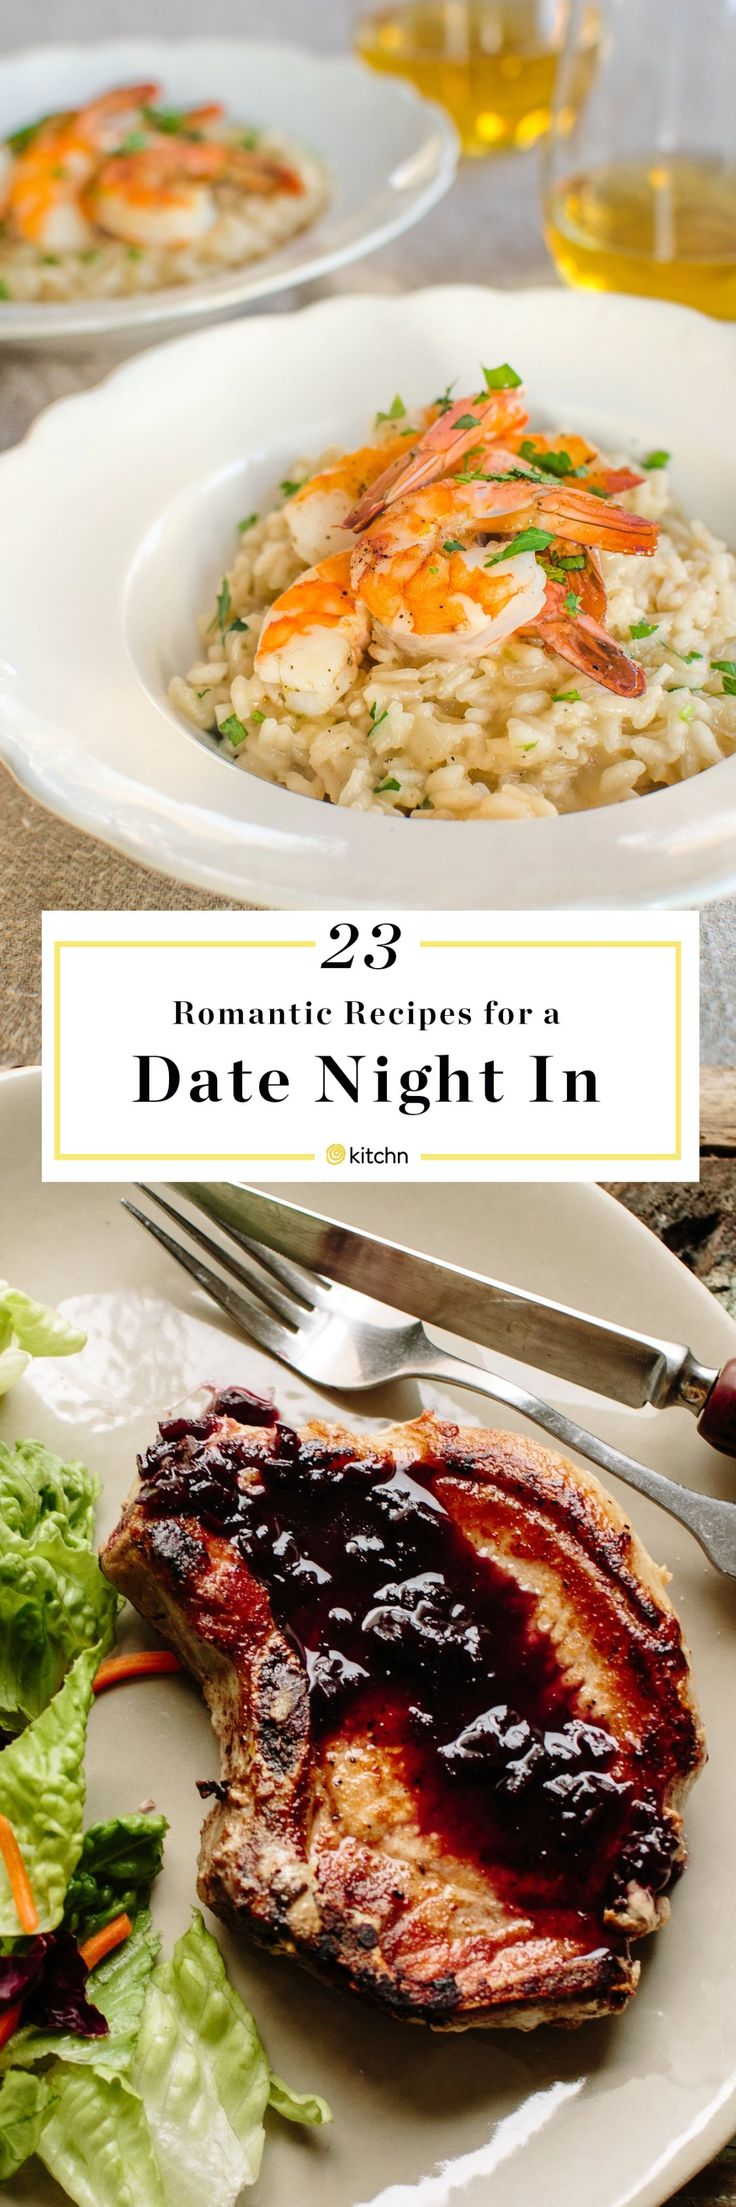 23 Romantic Recipes to Make for Someone You Love (Including Yourself). Looking for ideas at home and recipes to make for a date night in or valentine's day dinners? We have everything you need from romantic main dishes for two to sides.